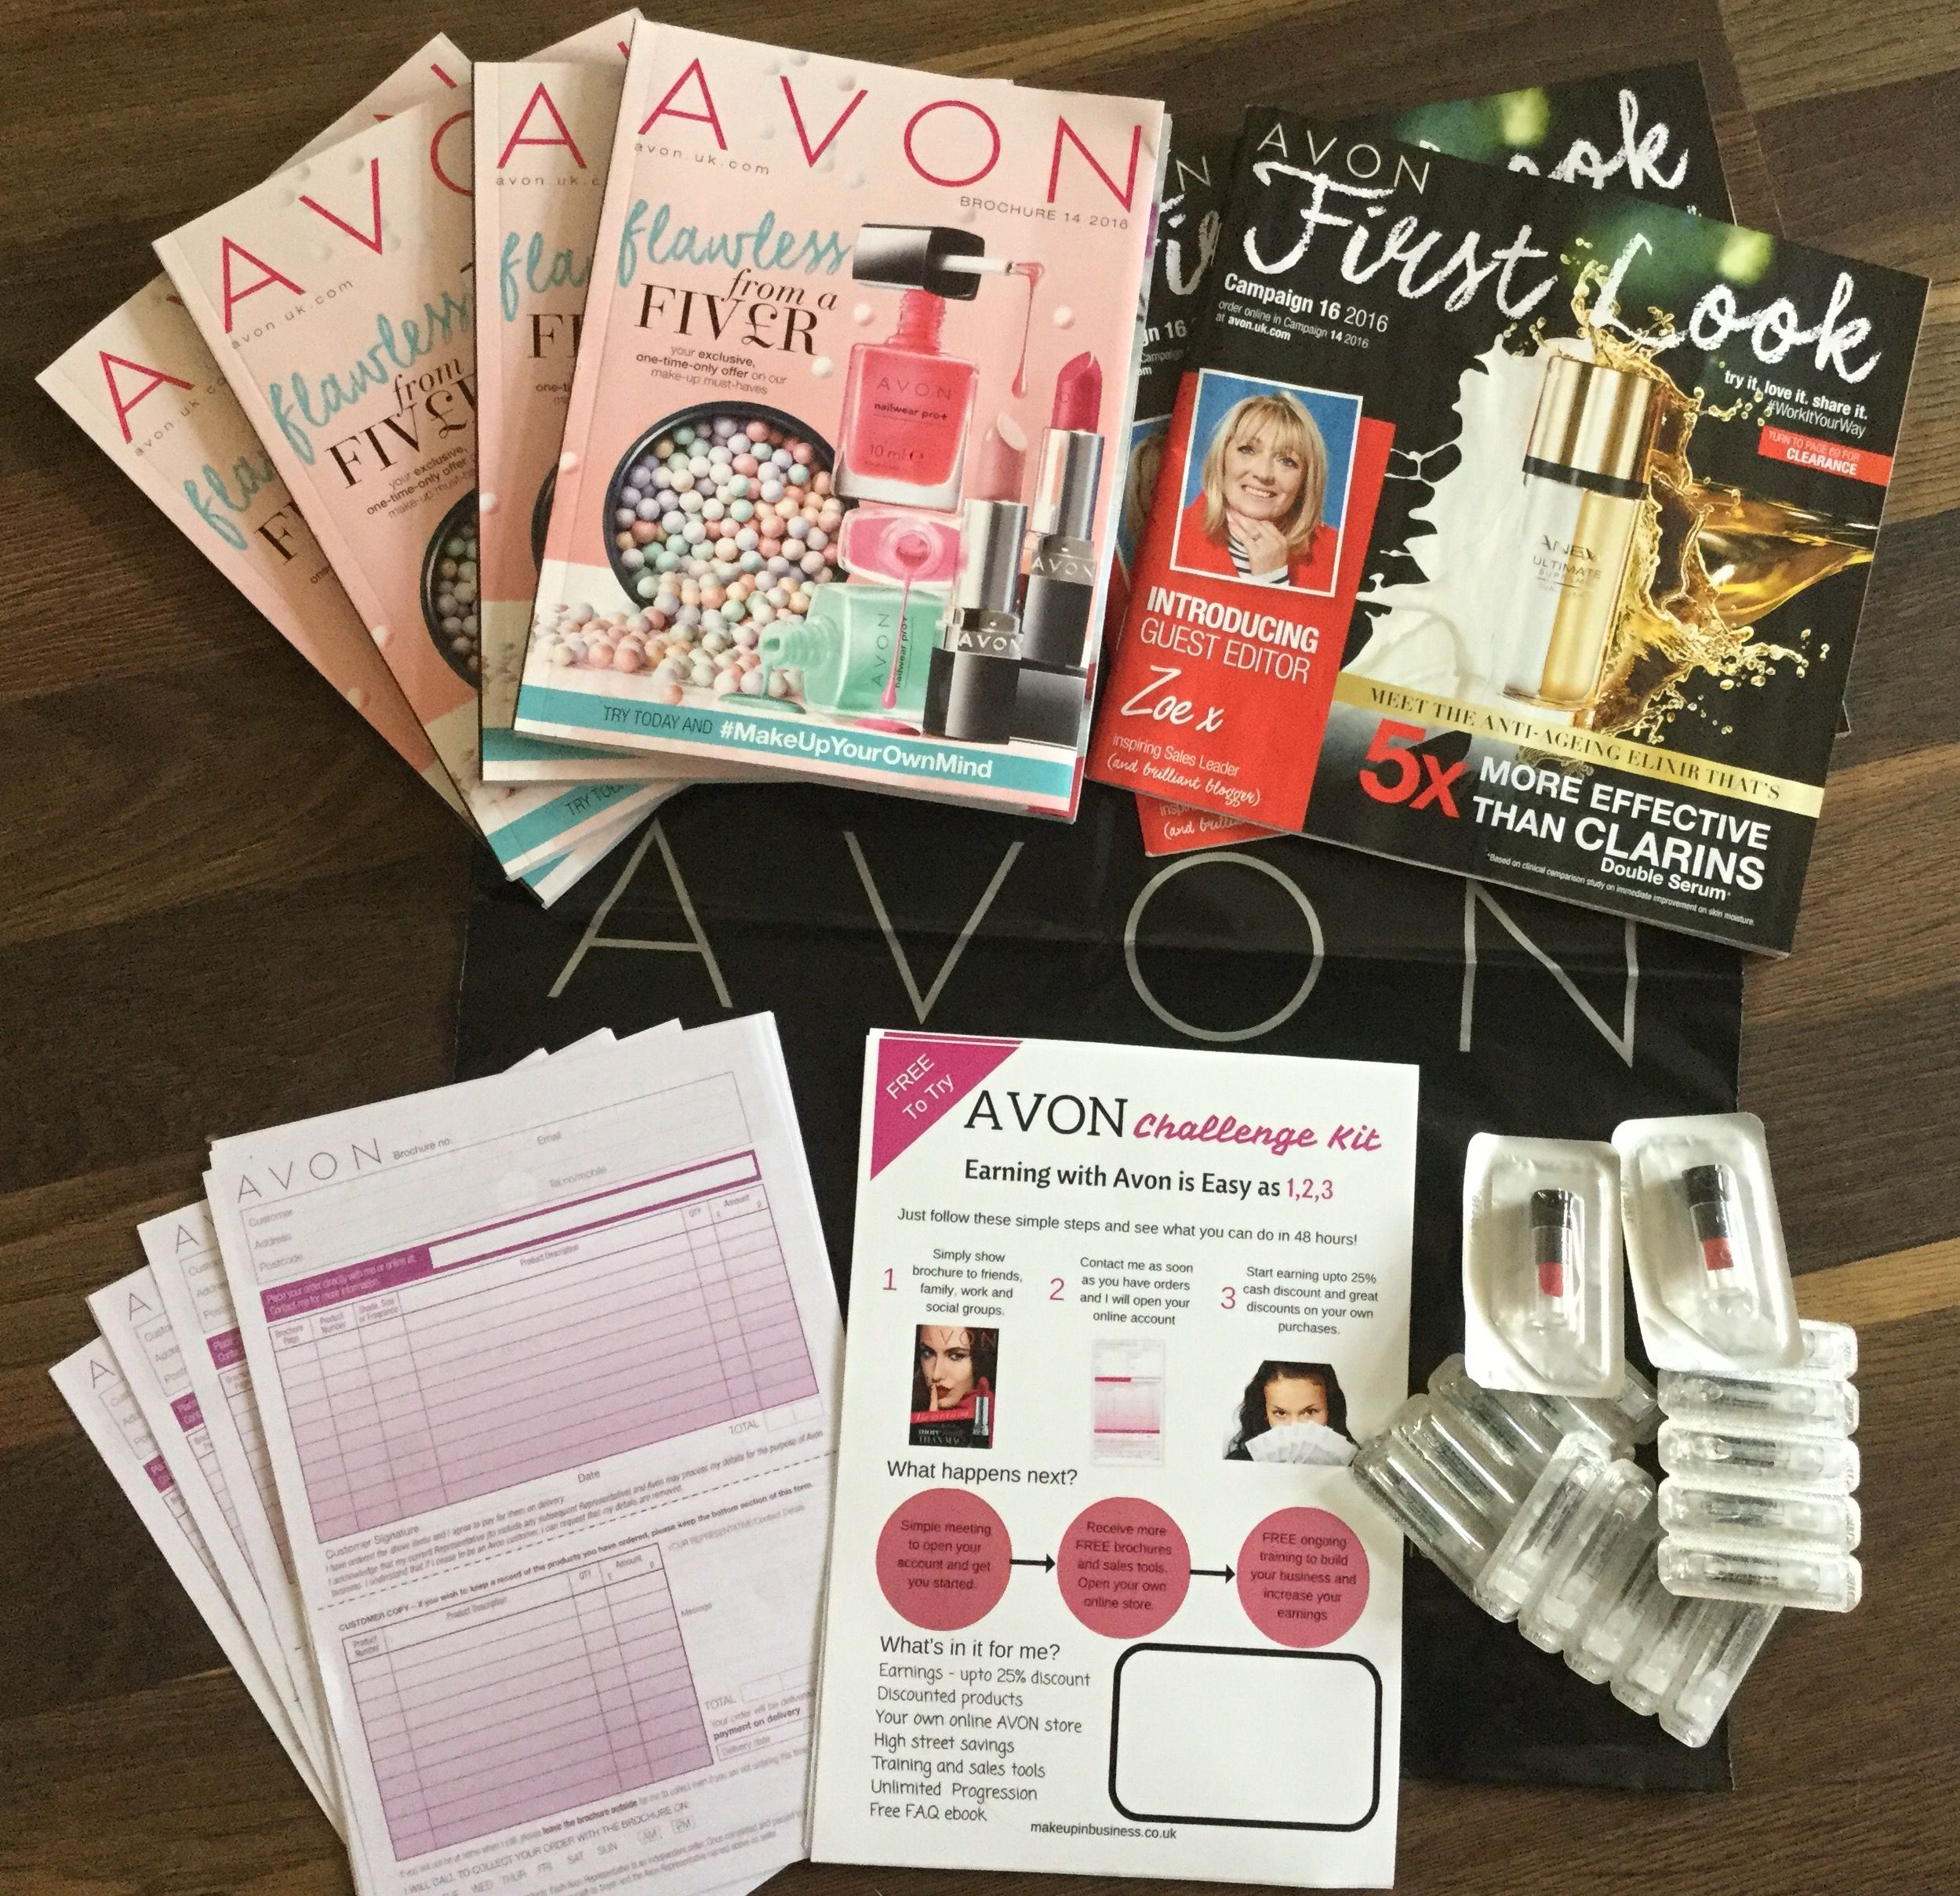 avon brochure challenge pack for new representatives avon brochure 14 challenge pack for new representatives join online at